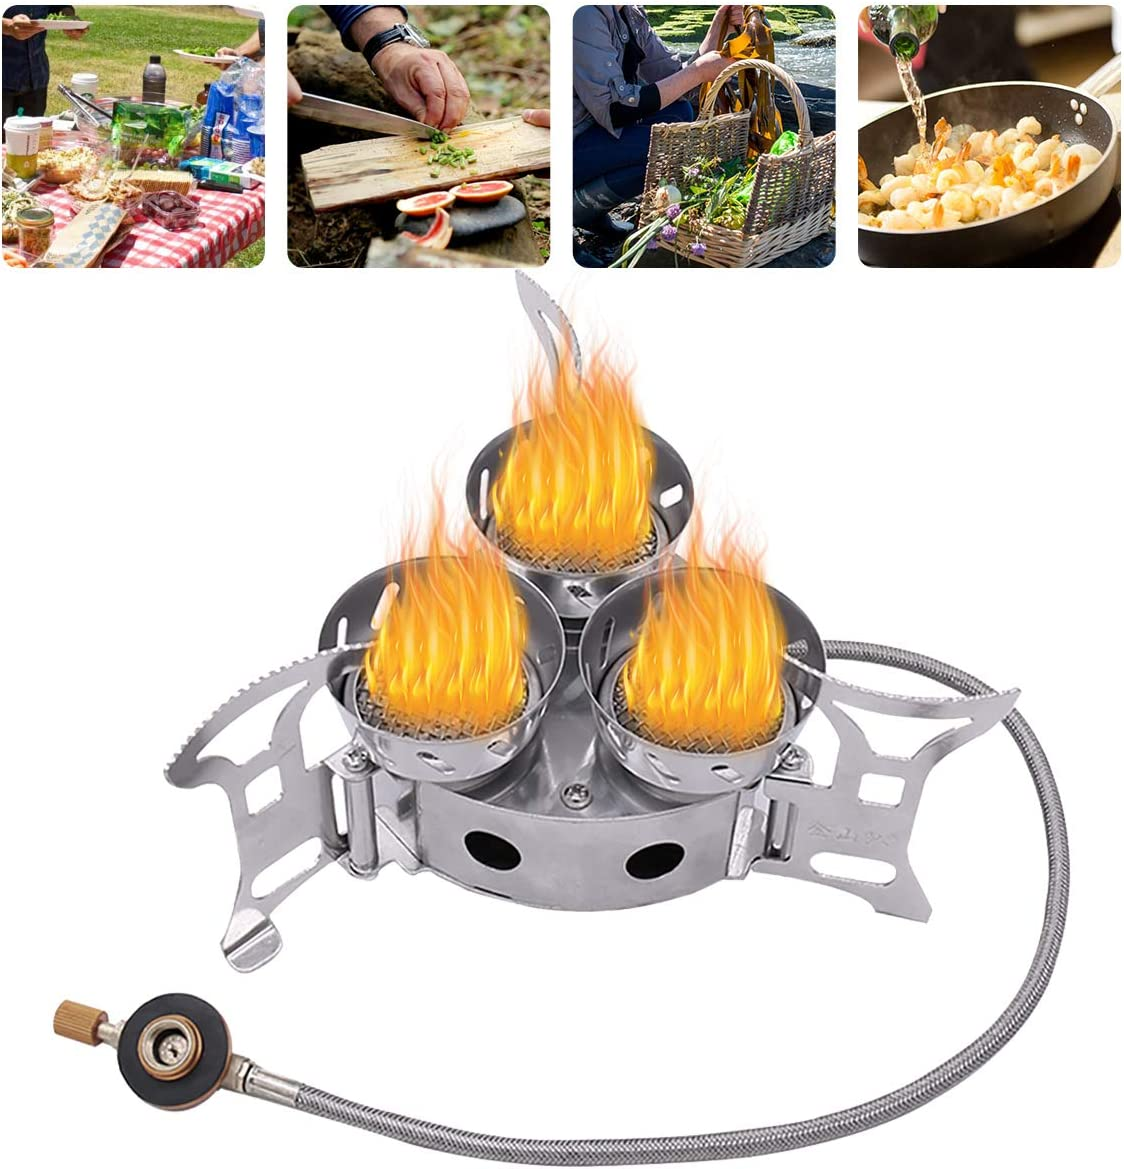 Qdreclod Camping Stove, 11000W Three-core Windproof Camping Gas Stove Mini Portable Stove with 3 Foldable Non-Slip Support Stand, Outdoor Backpacking Camp Stove Burner, Heavy Duty Support Up to 66 lb